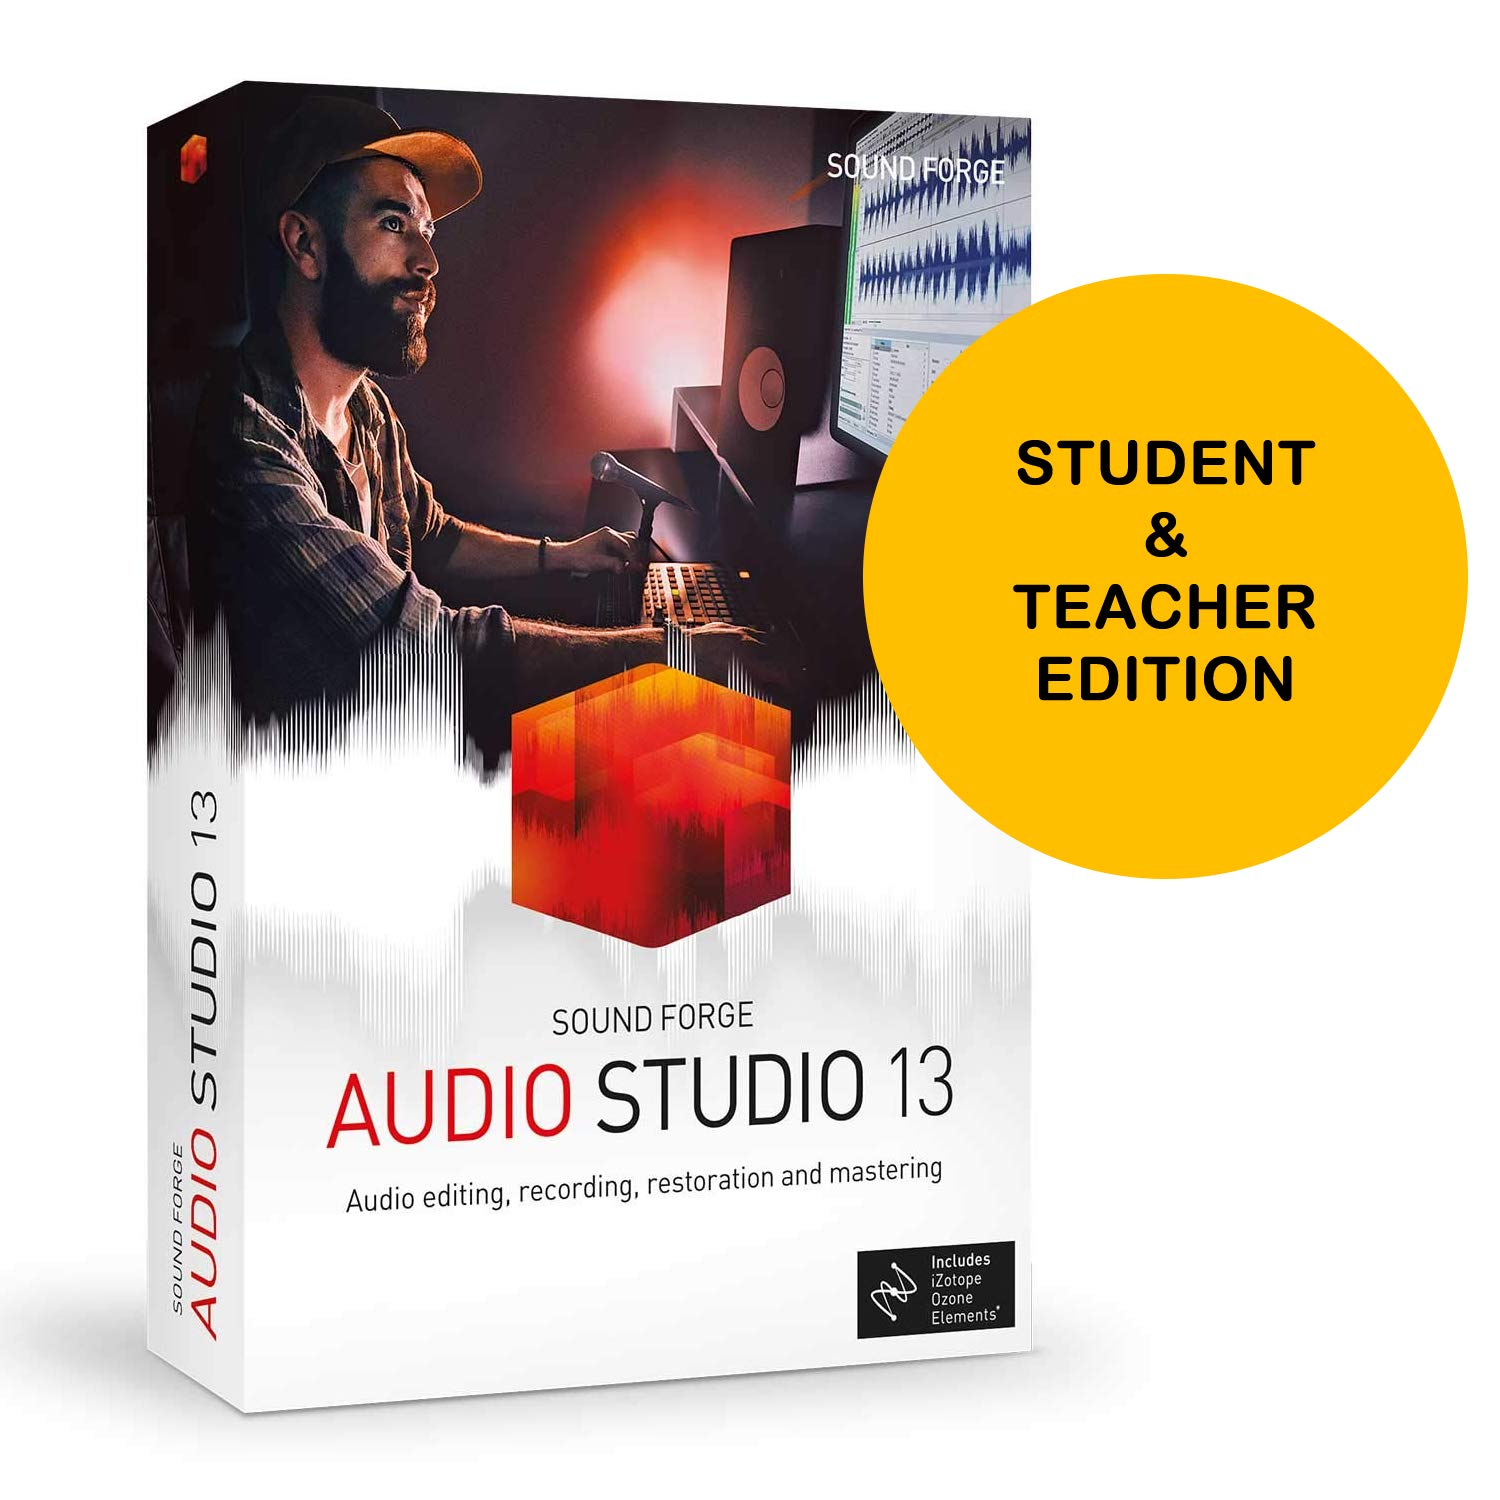 MAGIX Sound Forge Audio Studio 13 Student and Teacher Edition - Audio Editing, Recording, Restoration and Mastering by Magix-Genesis